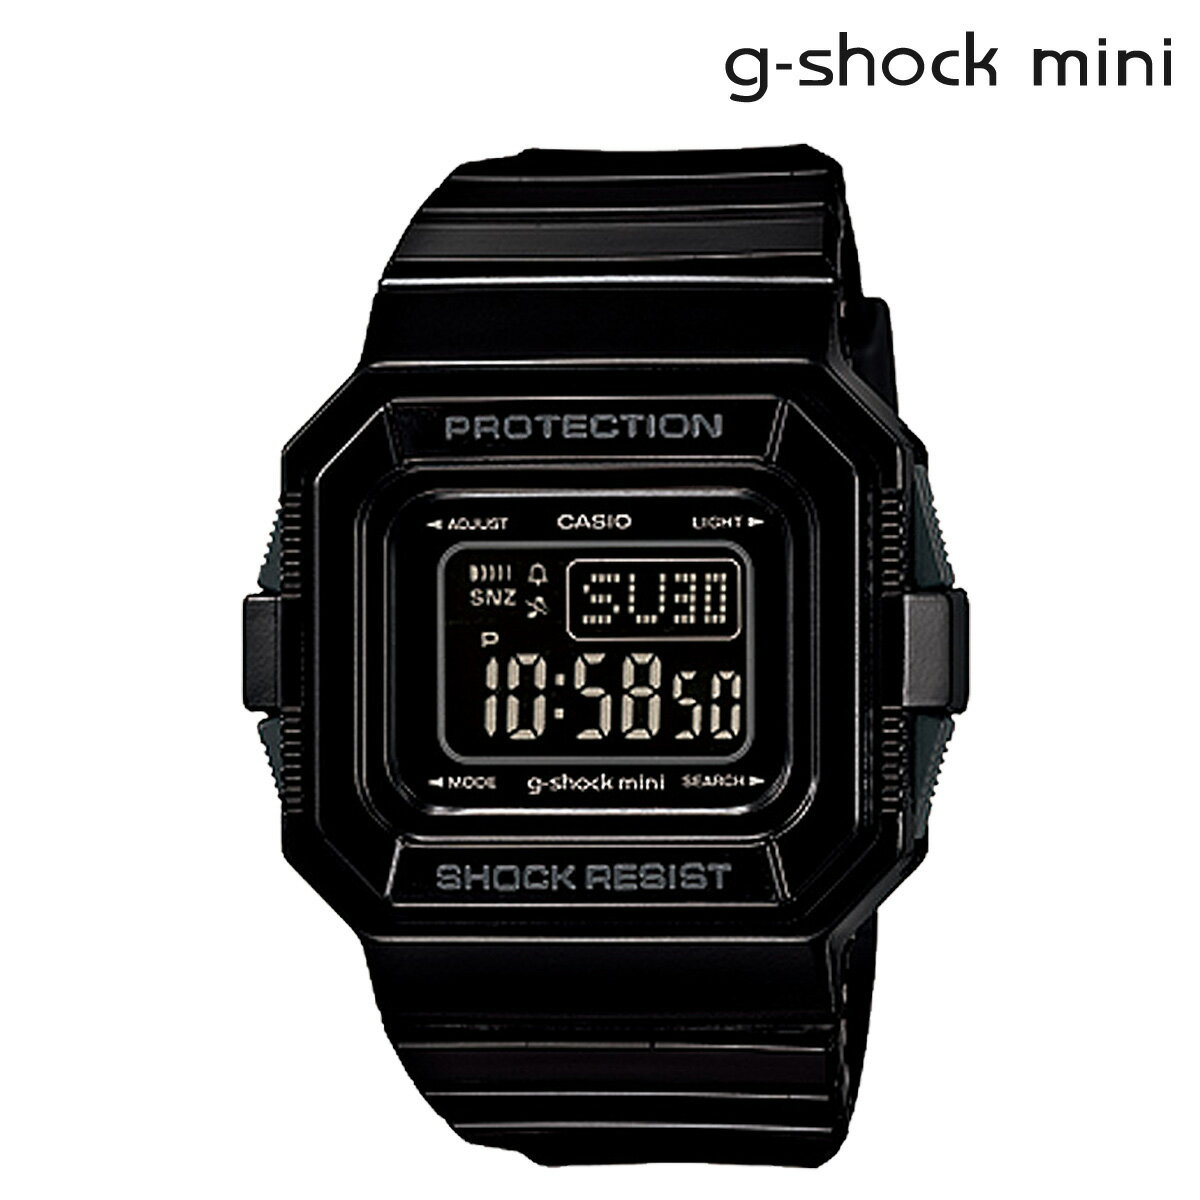 腕時計, レディース腕時計 600OFF CASIO g-shock mini GMN-550-1DJR G G-